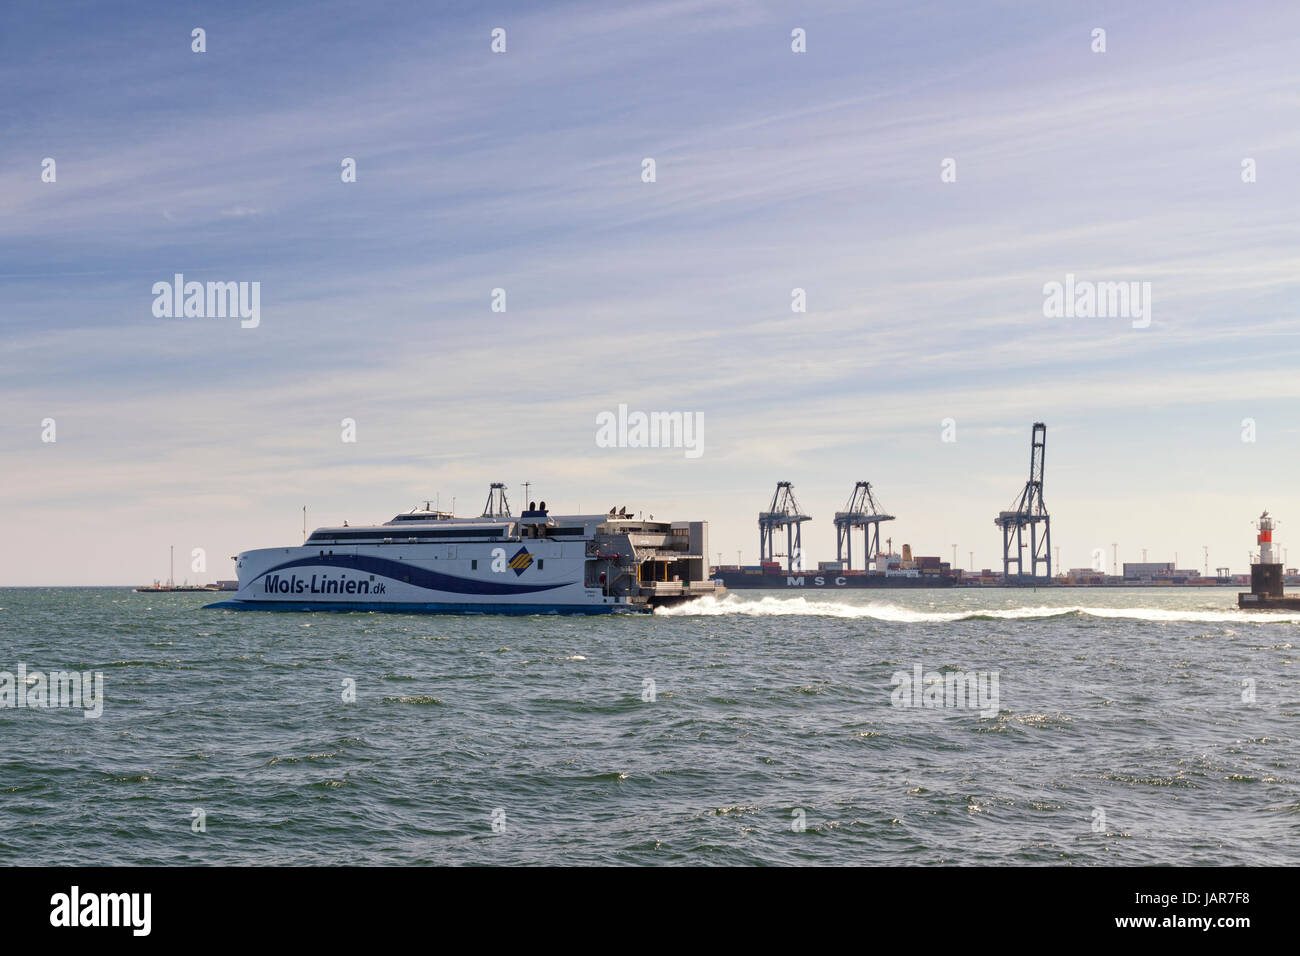 Aarhus, Denmark - May 2, 2017: Express ferry operated by Mols-Linien leaving Aarhus harbor, heading to Sealand. - Stock Image